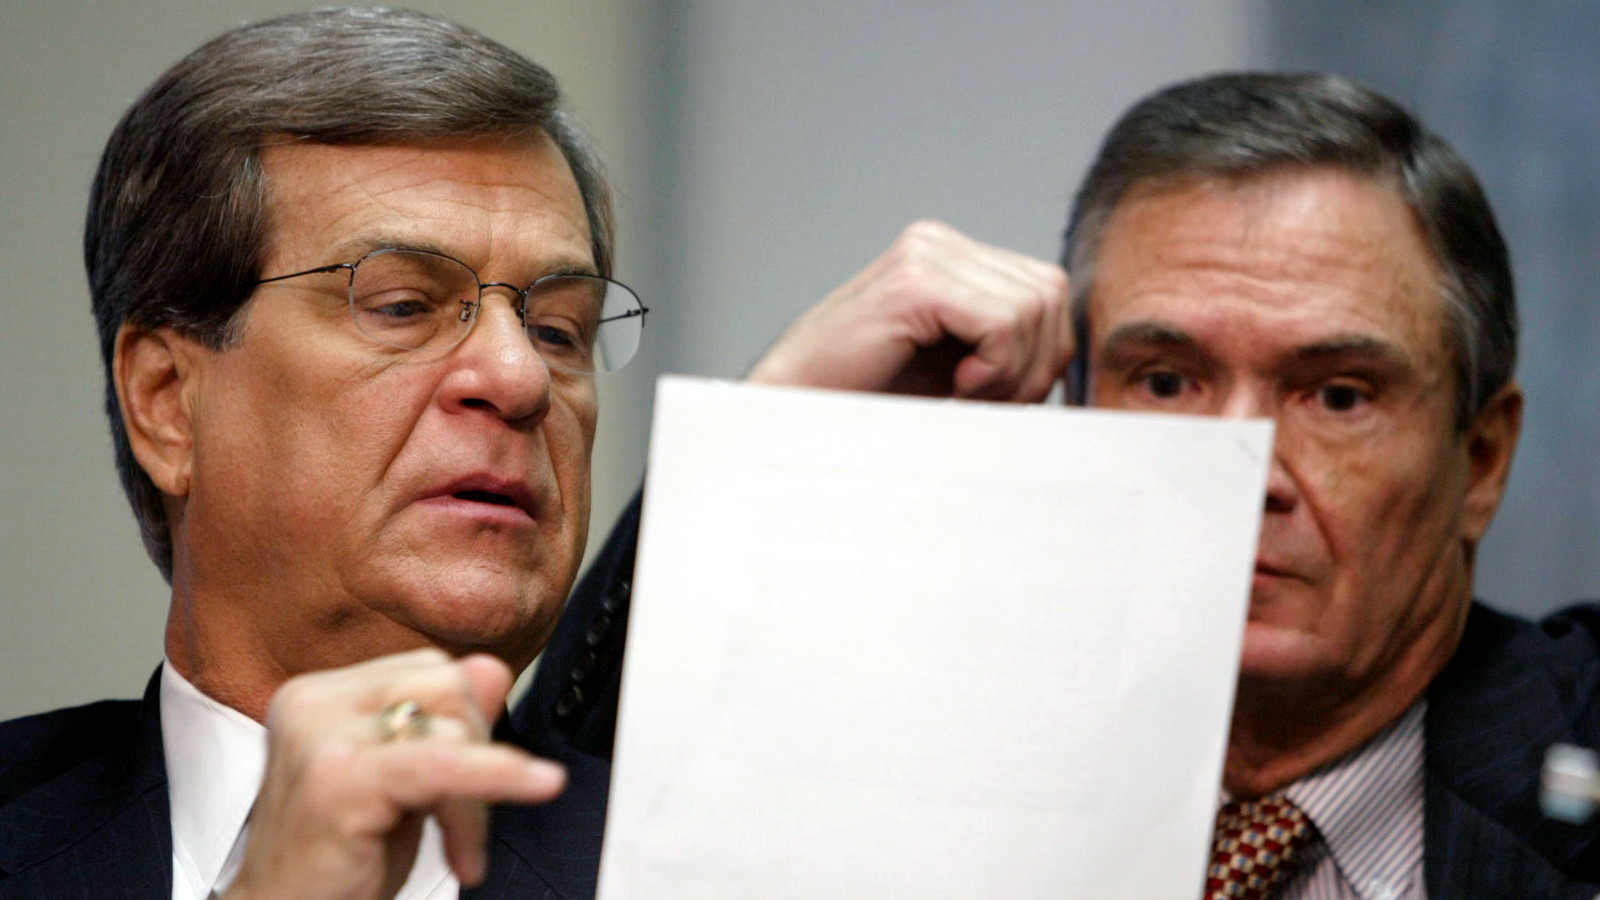 Senator Trent Lott (R-MS) points something out to Senator John Breaux (D-LA) during a hearing with commissioners of the Federal Communications Commission before the Senate Commerce, Science and Transportation Committee January 14, 2003. The hearing was held to discuss issues involving the troubled telecommunications industry.